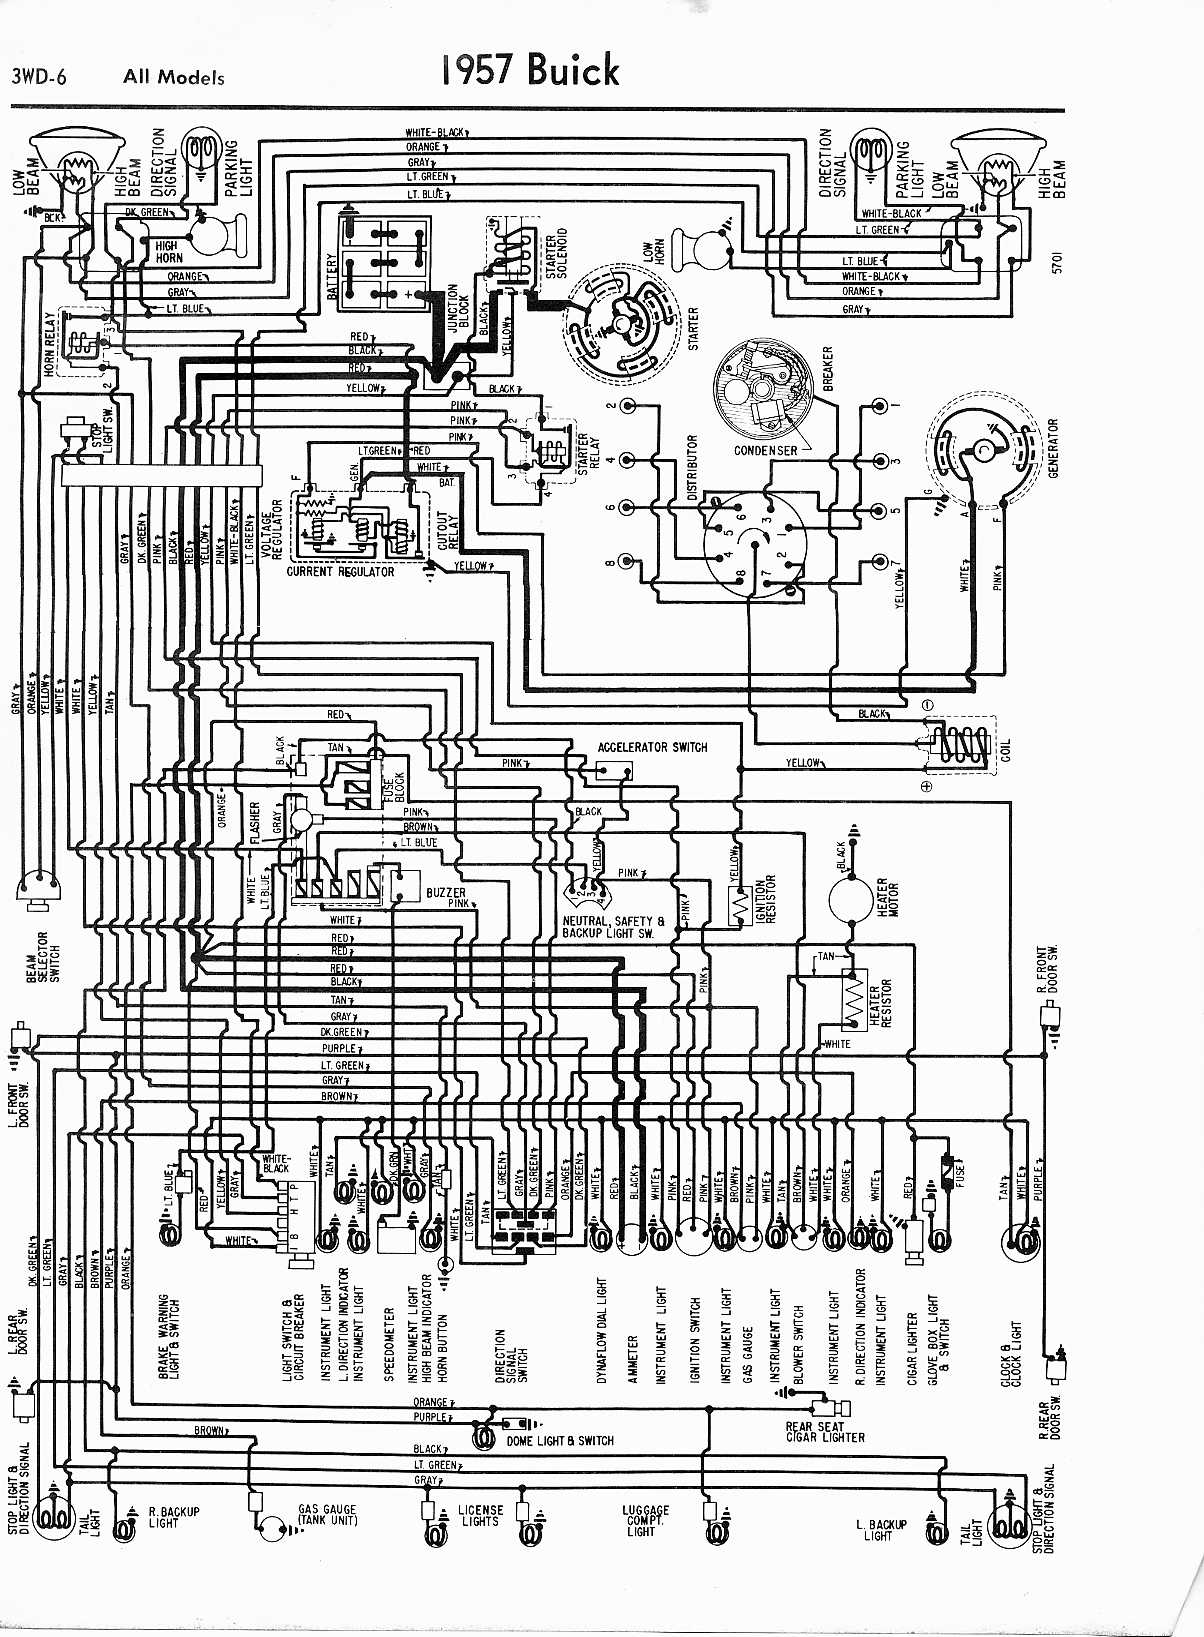 MWireBuic65_3WD 006 1954 buick wiring diagram wiring diagram shrutiradio 1989 buick lesabre stereo wiring diagram at honlapkeszites.co